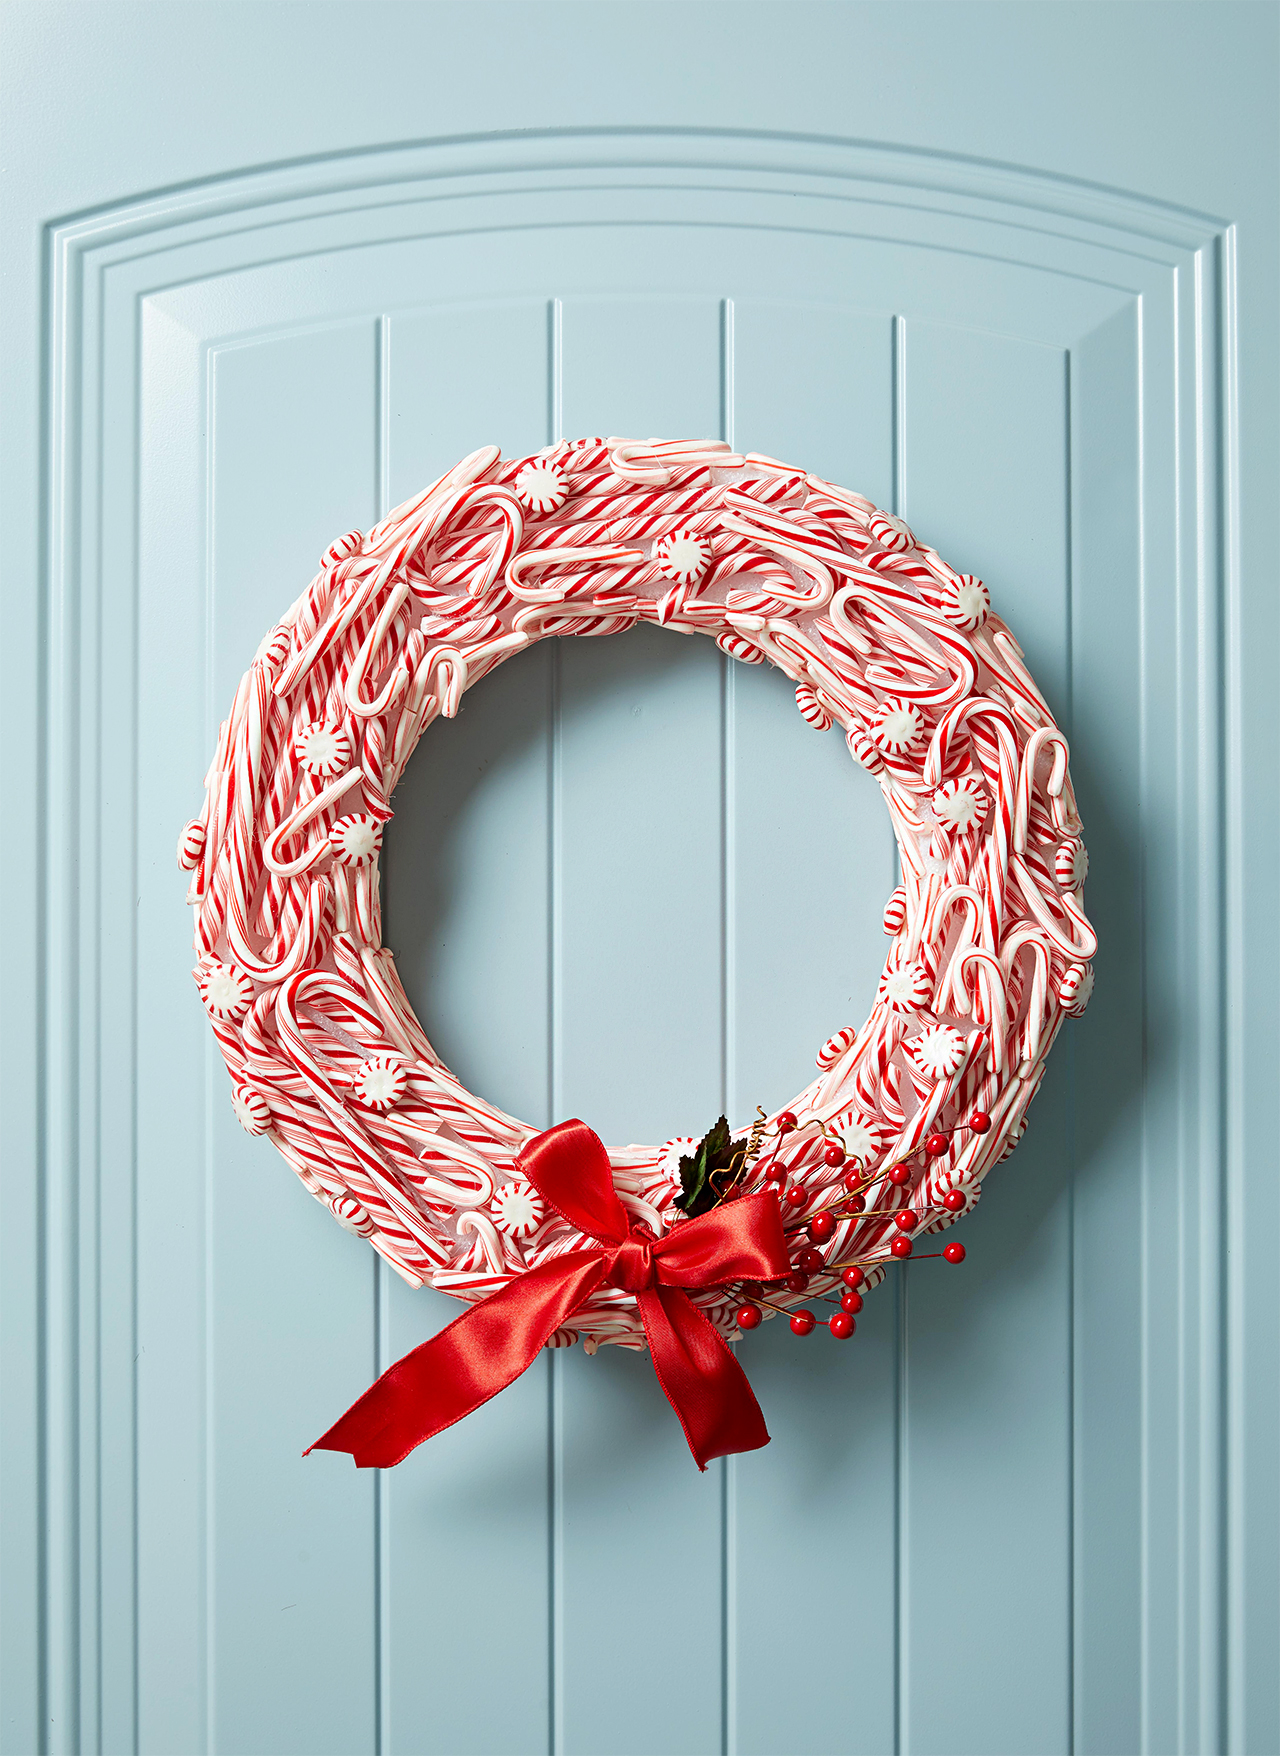 hanging red and white wreath with peppermint candies